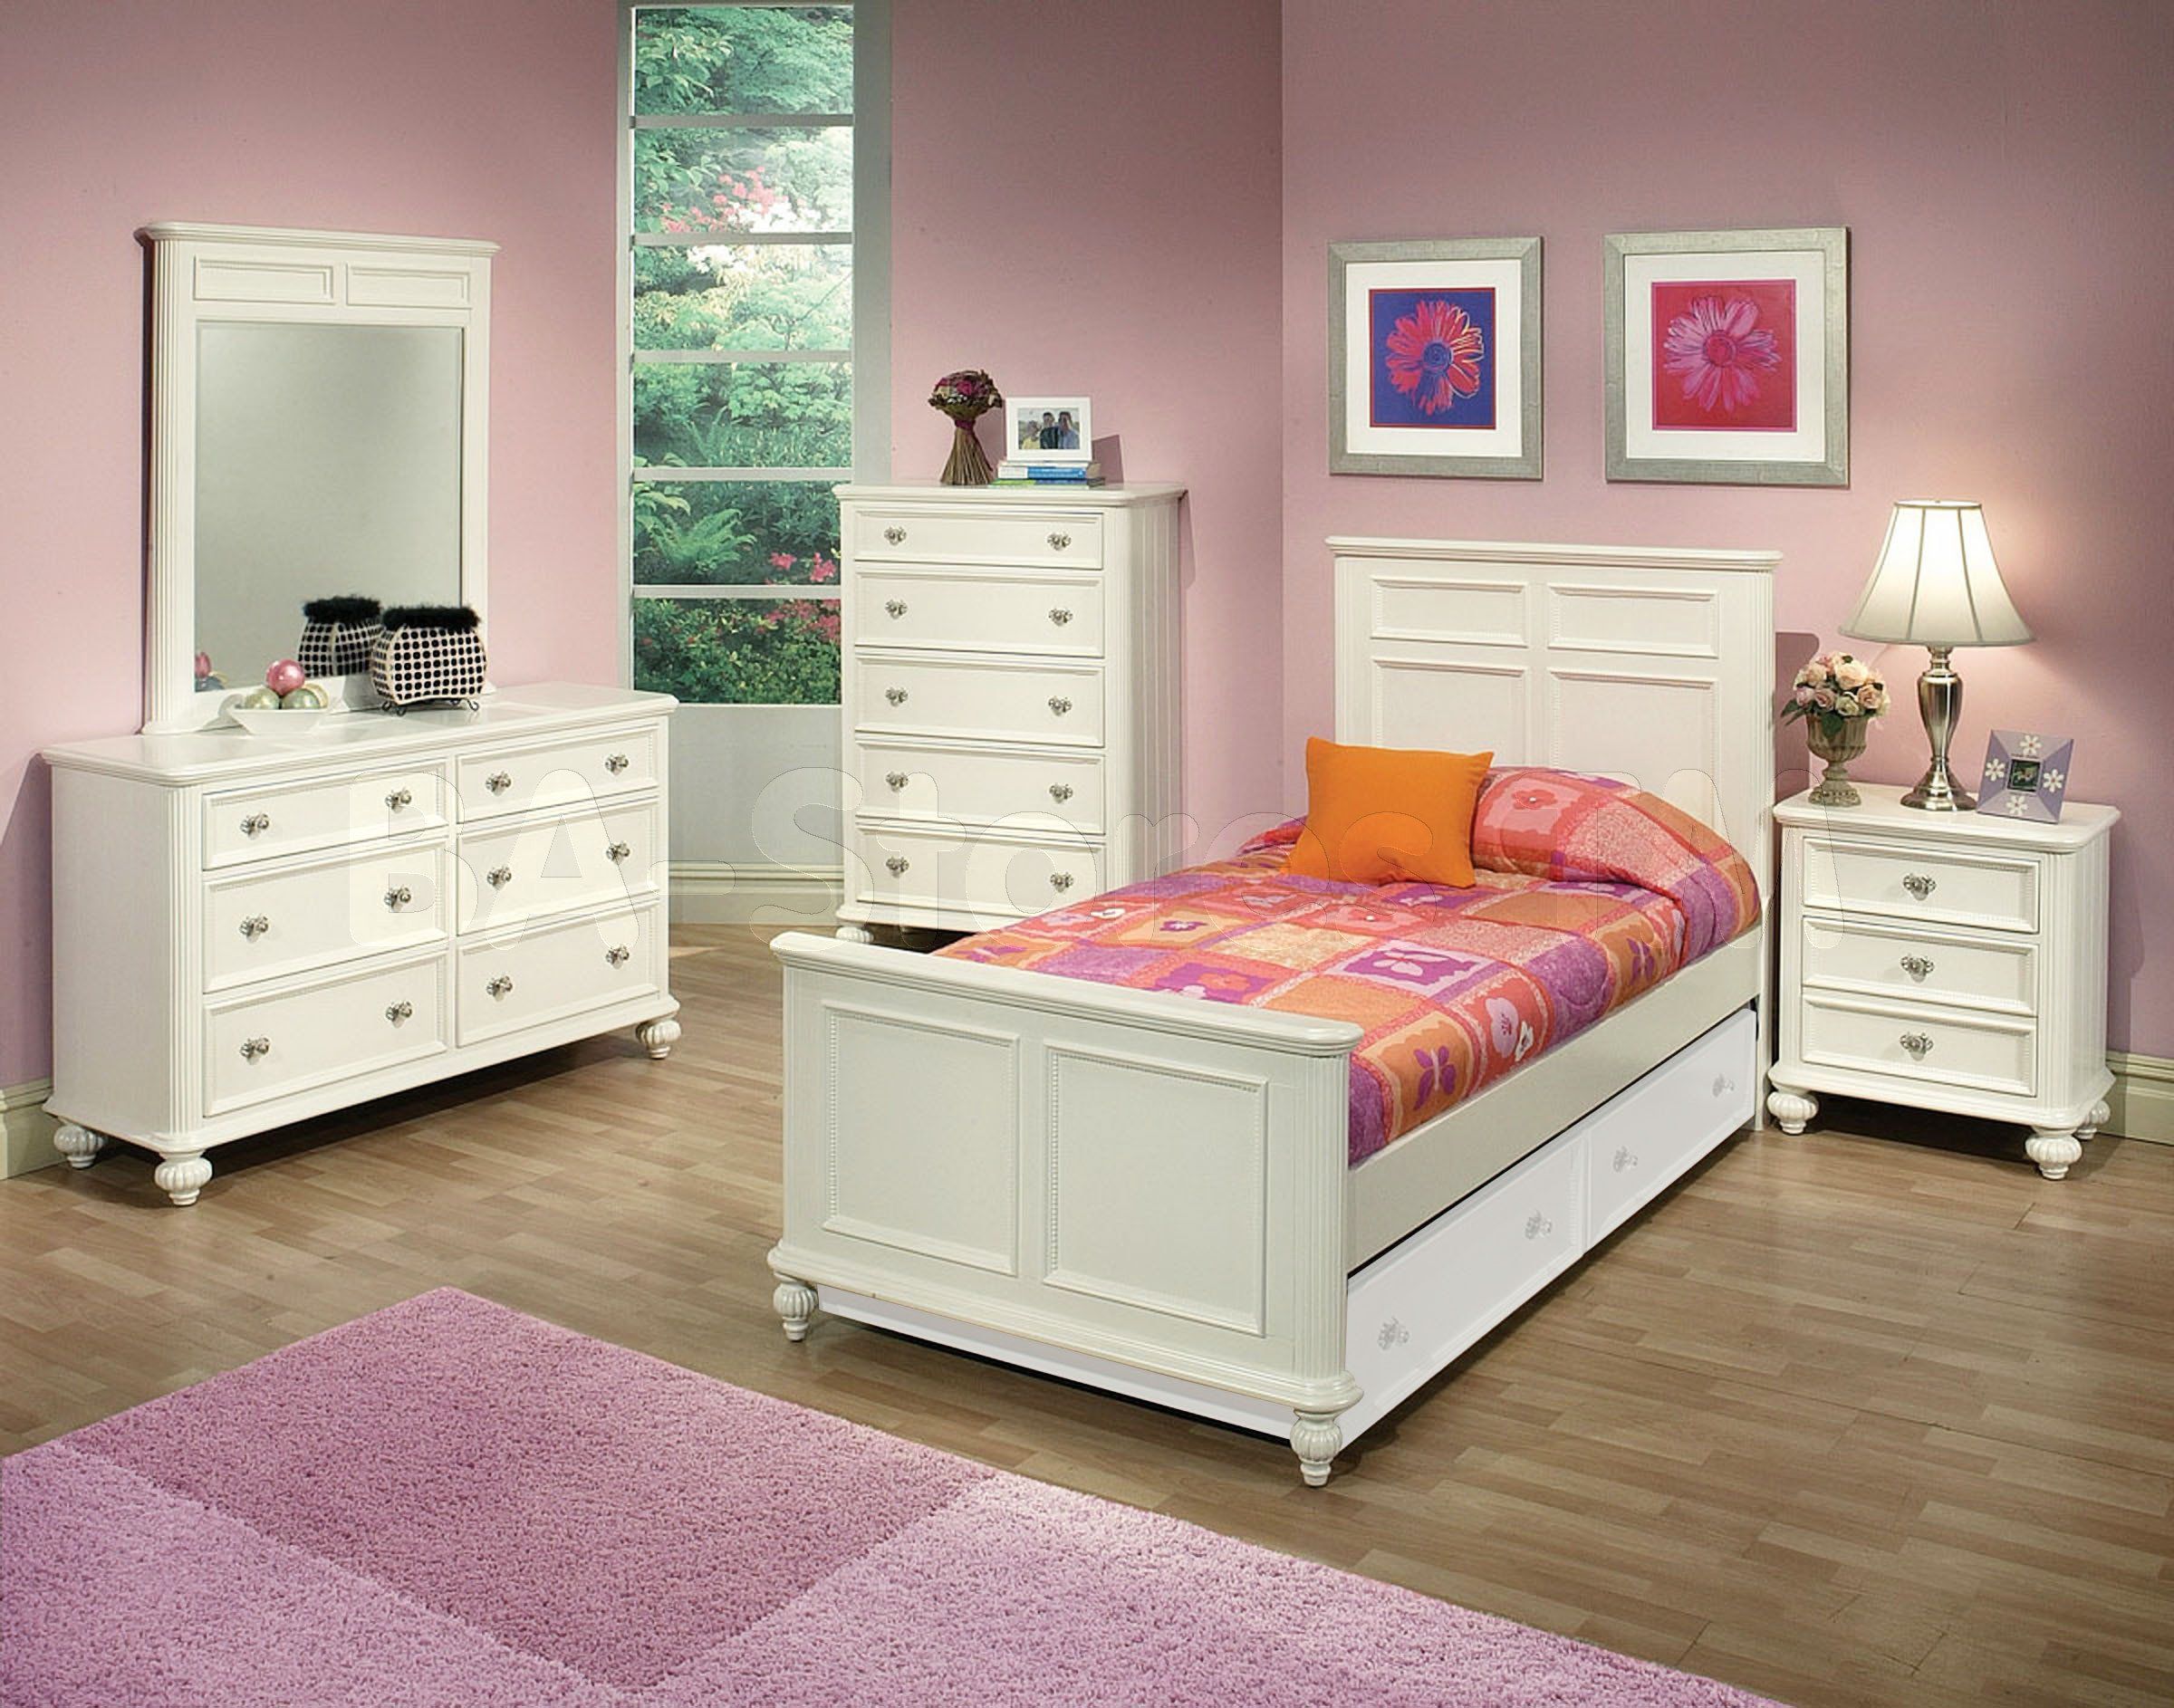 Kids Bedroom Chairs Solid Wood Bedroom Furniture For Kids 20 Tips For Best